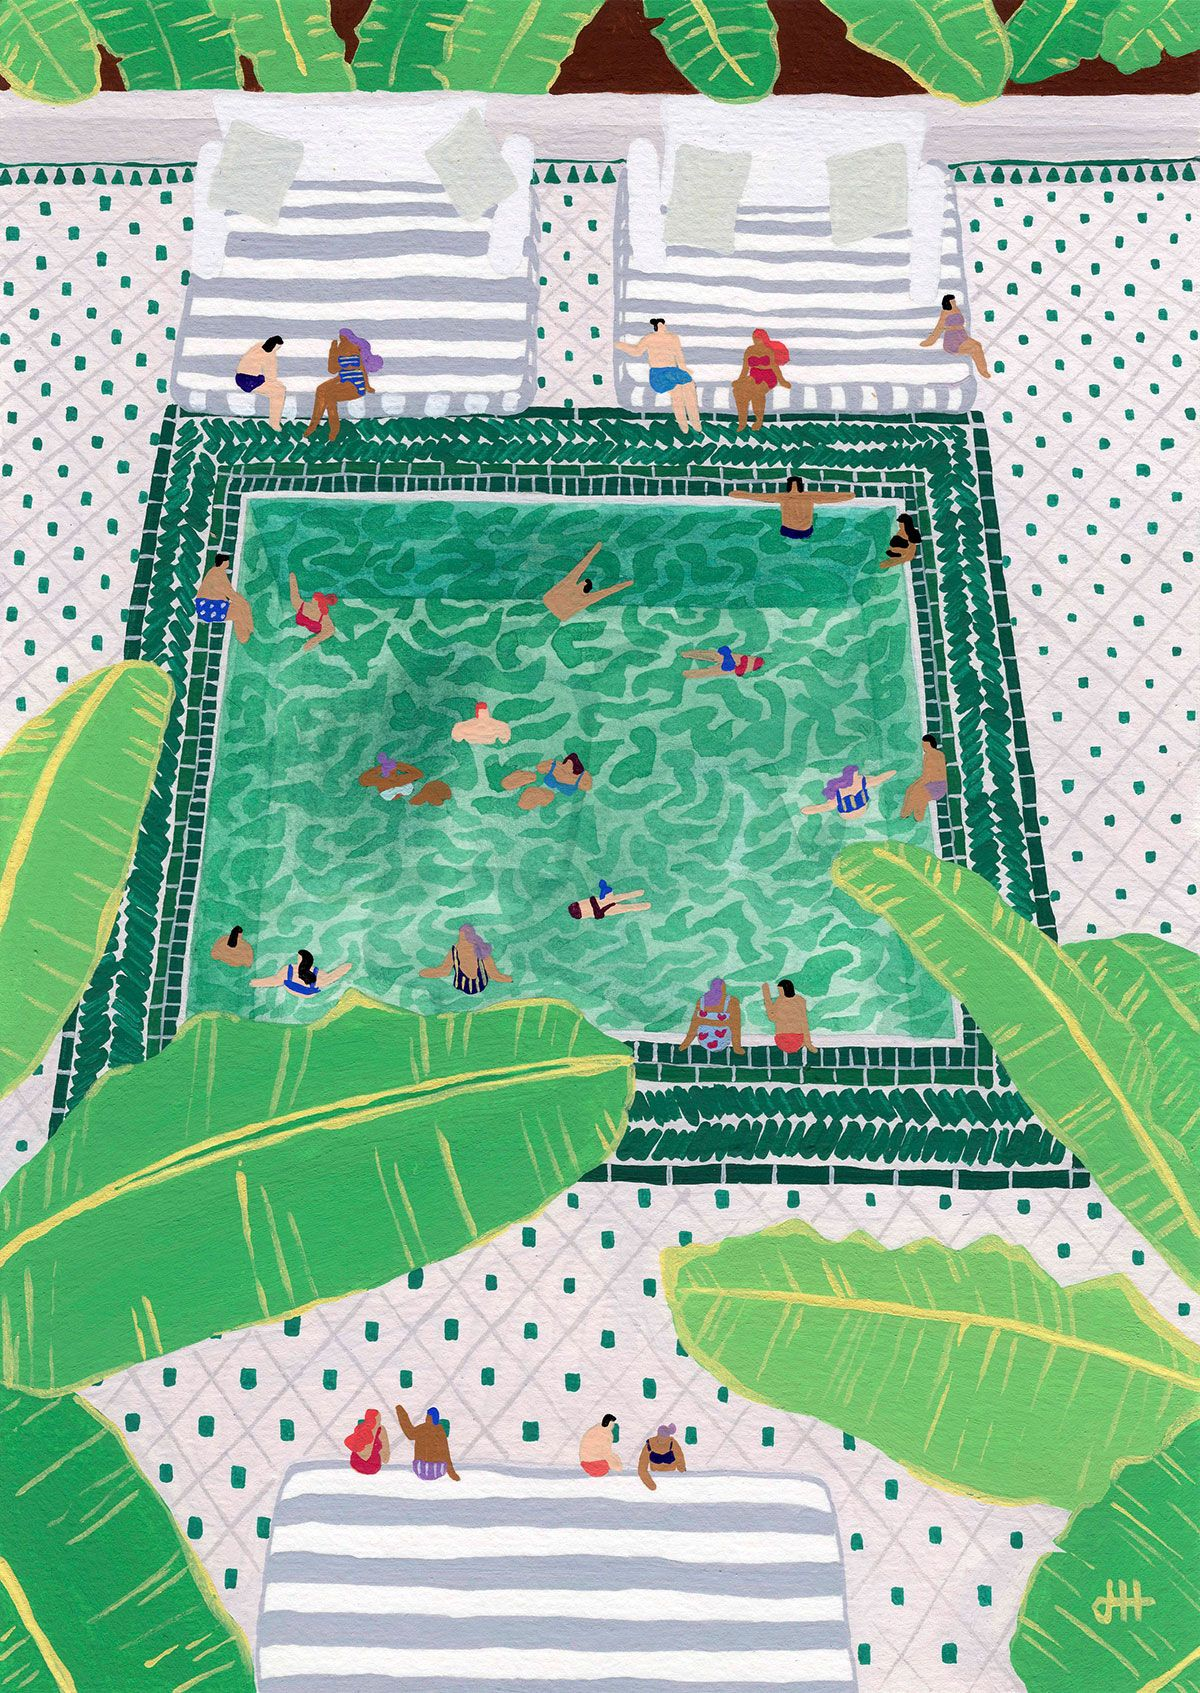 By The Pool Art Art Prints Illustration